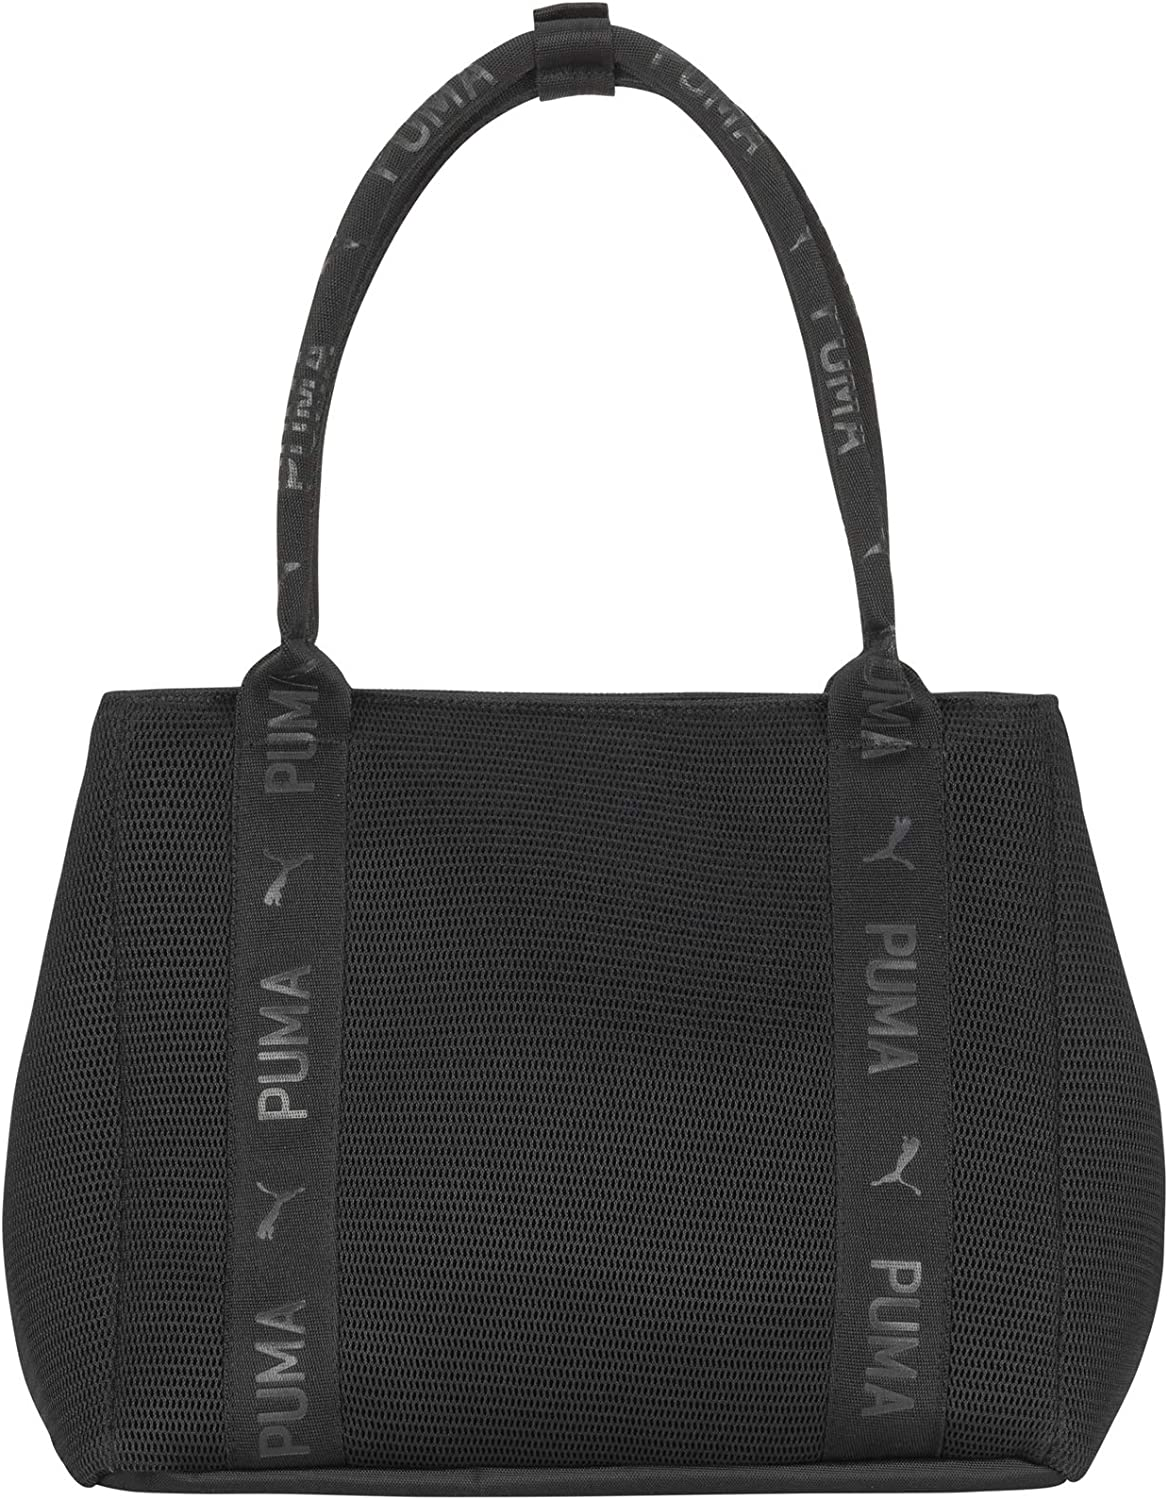 PUMA Evercat Free Shipping New Raleigh Mall Up Comer Tote